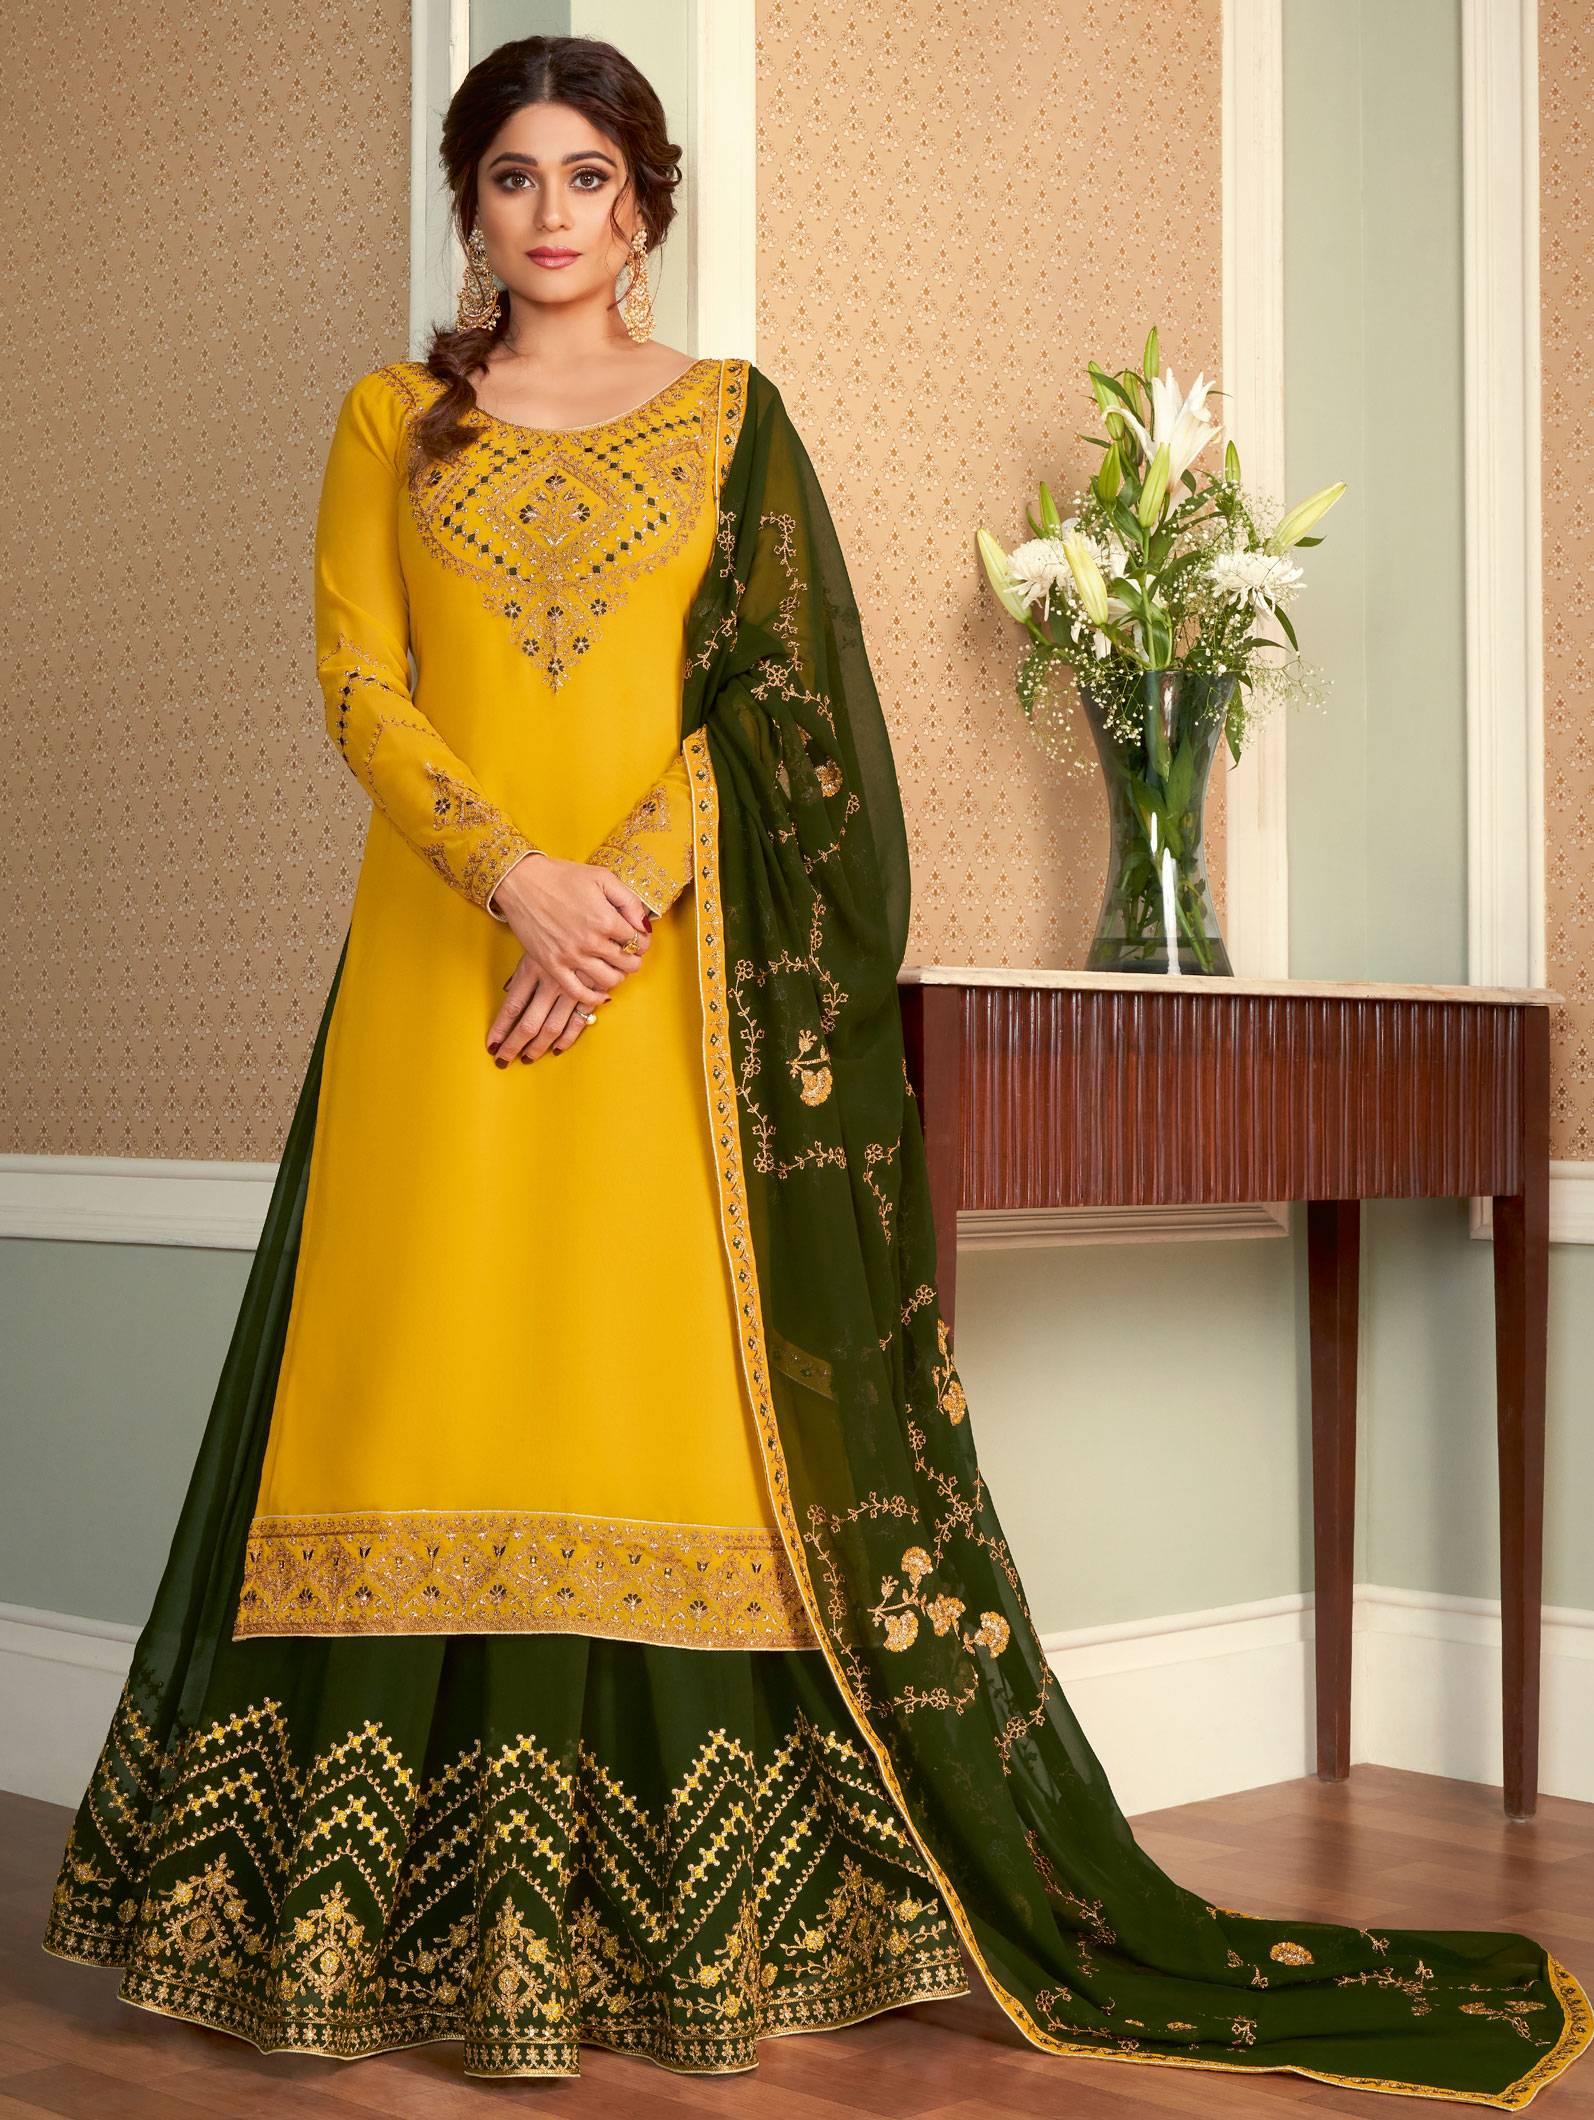 Party Wear Green with Yellow Long Kurti Lehenga with Price